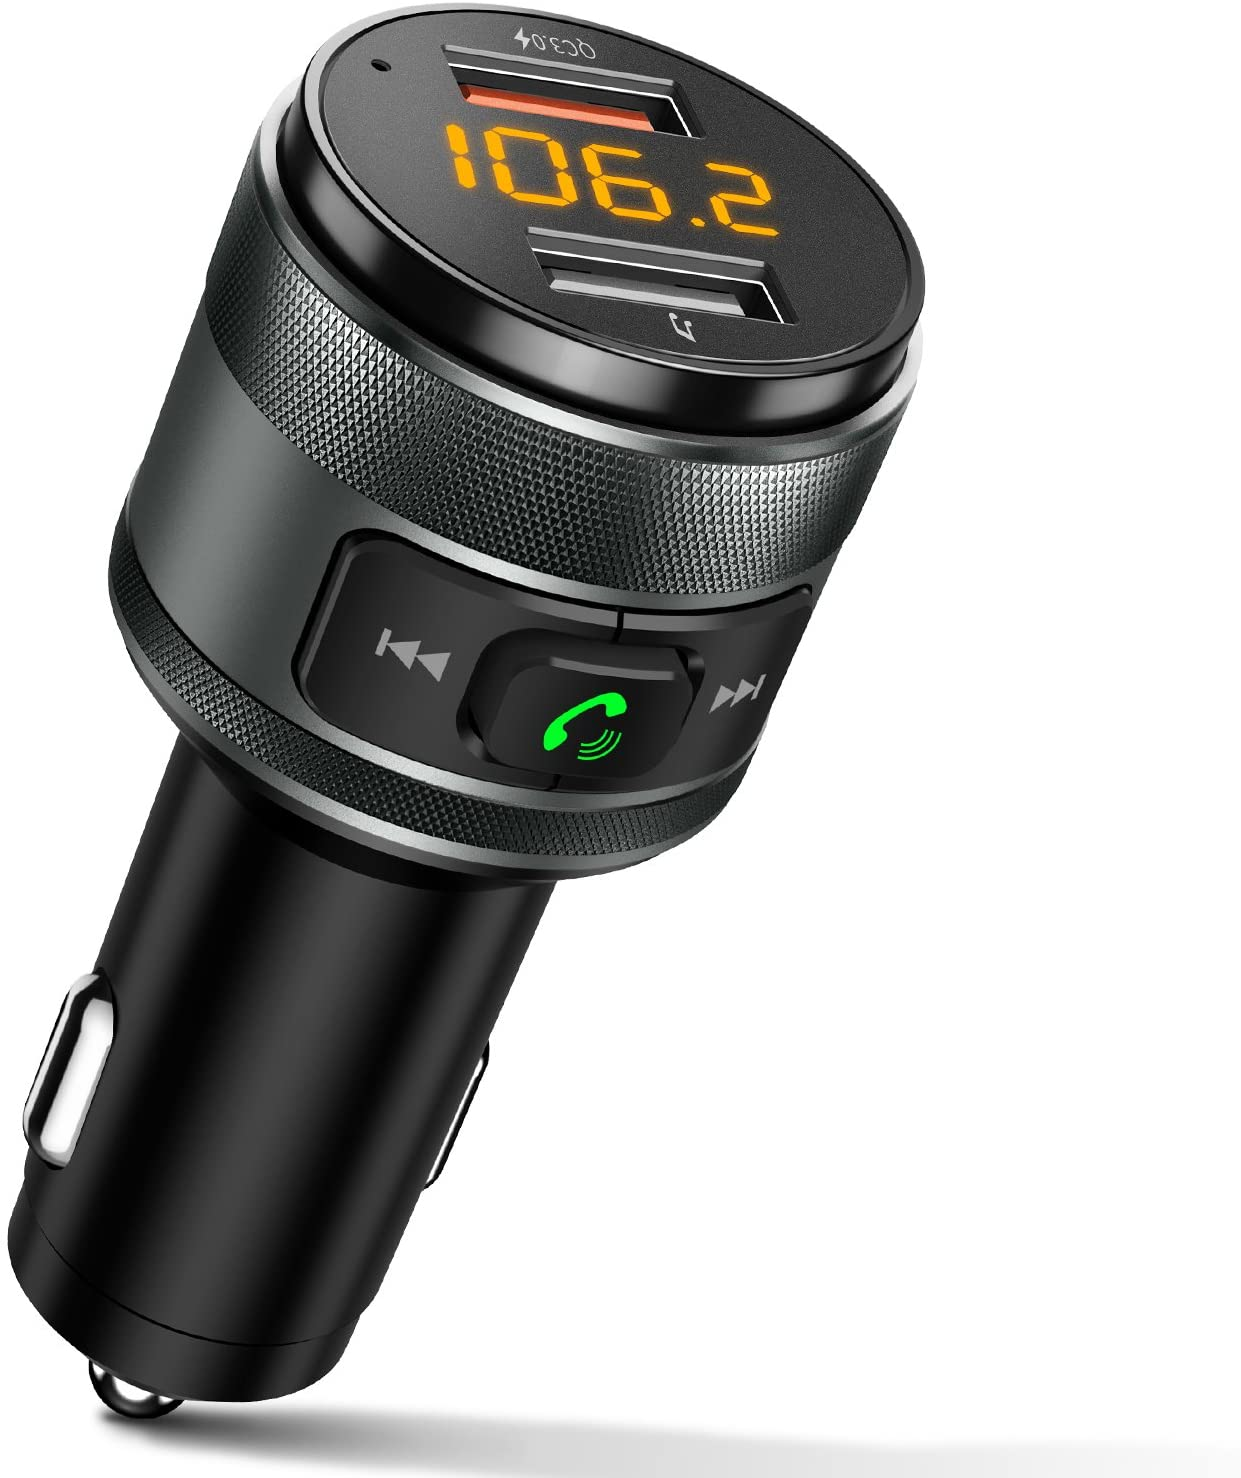 Bluetooth Car Kit MP3 Player Wireless Multifunction FM Transmitter for Car USB Fast Charger SD//LCD with Built-in Microphone Supports Hands-Free Calling Remote Control Included